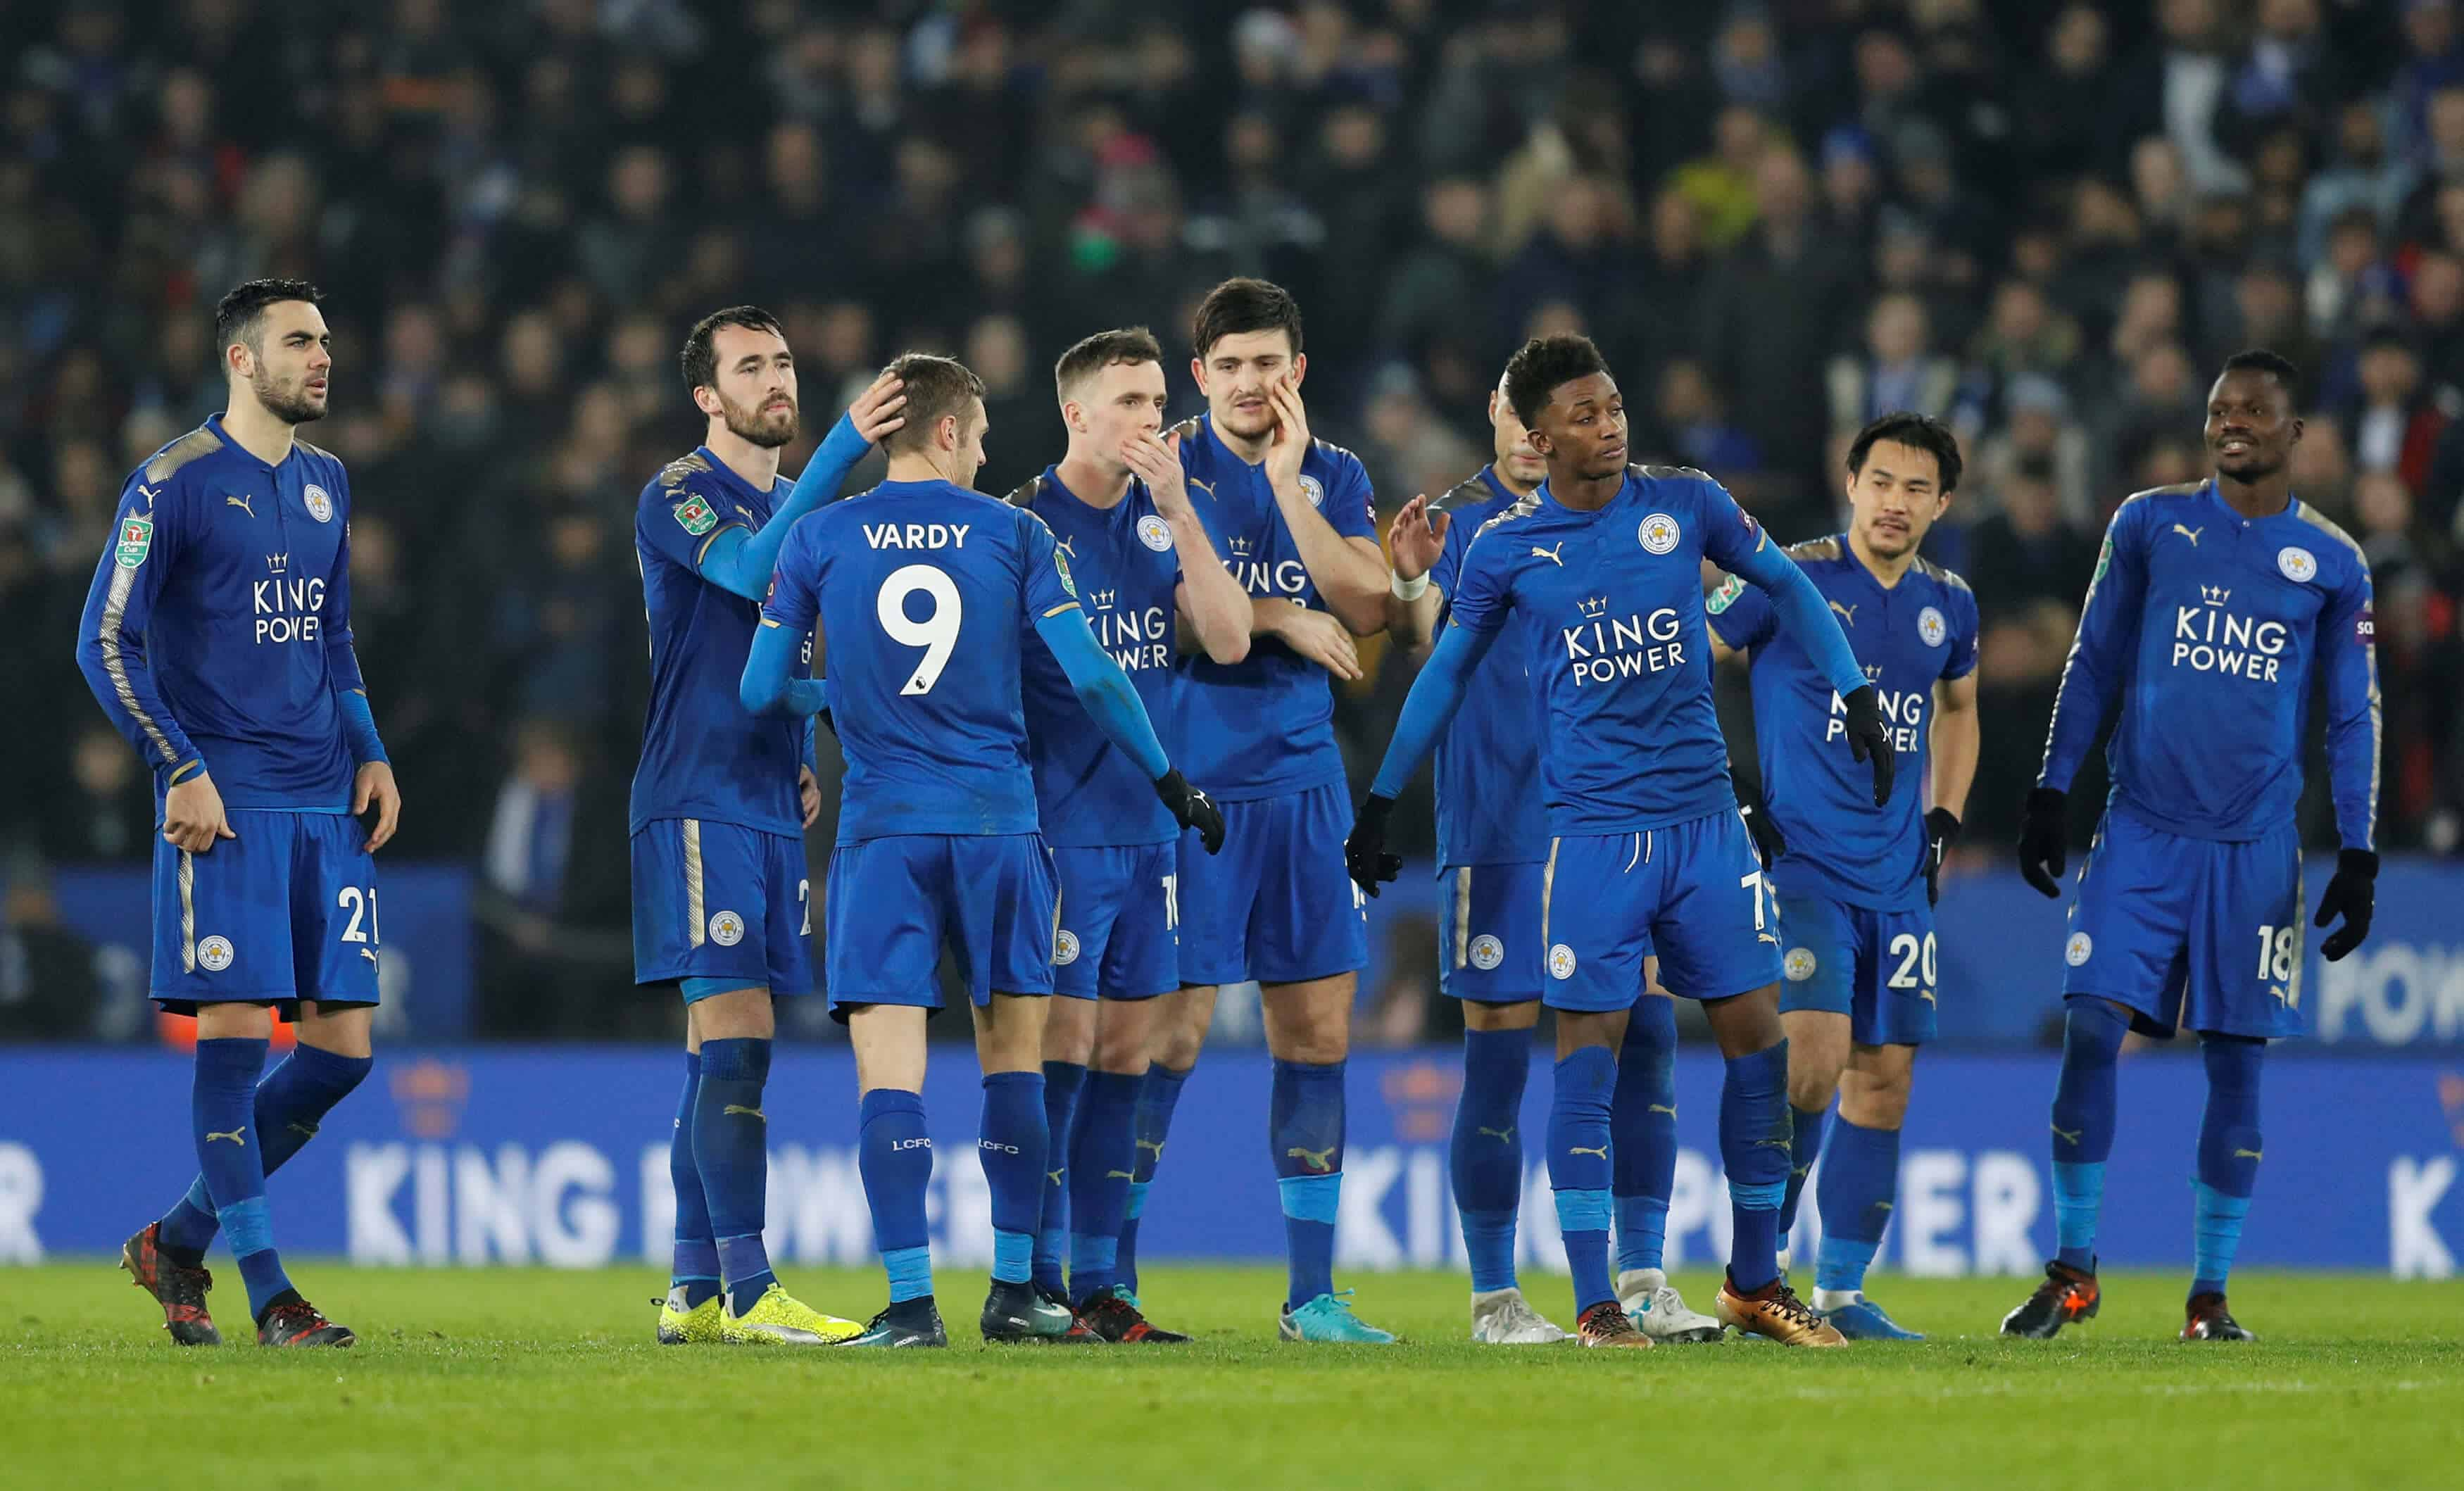 LEICESTER CITY tim sepak bola 2019 - Salin